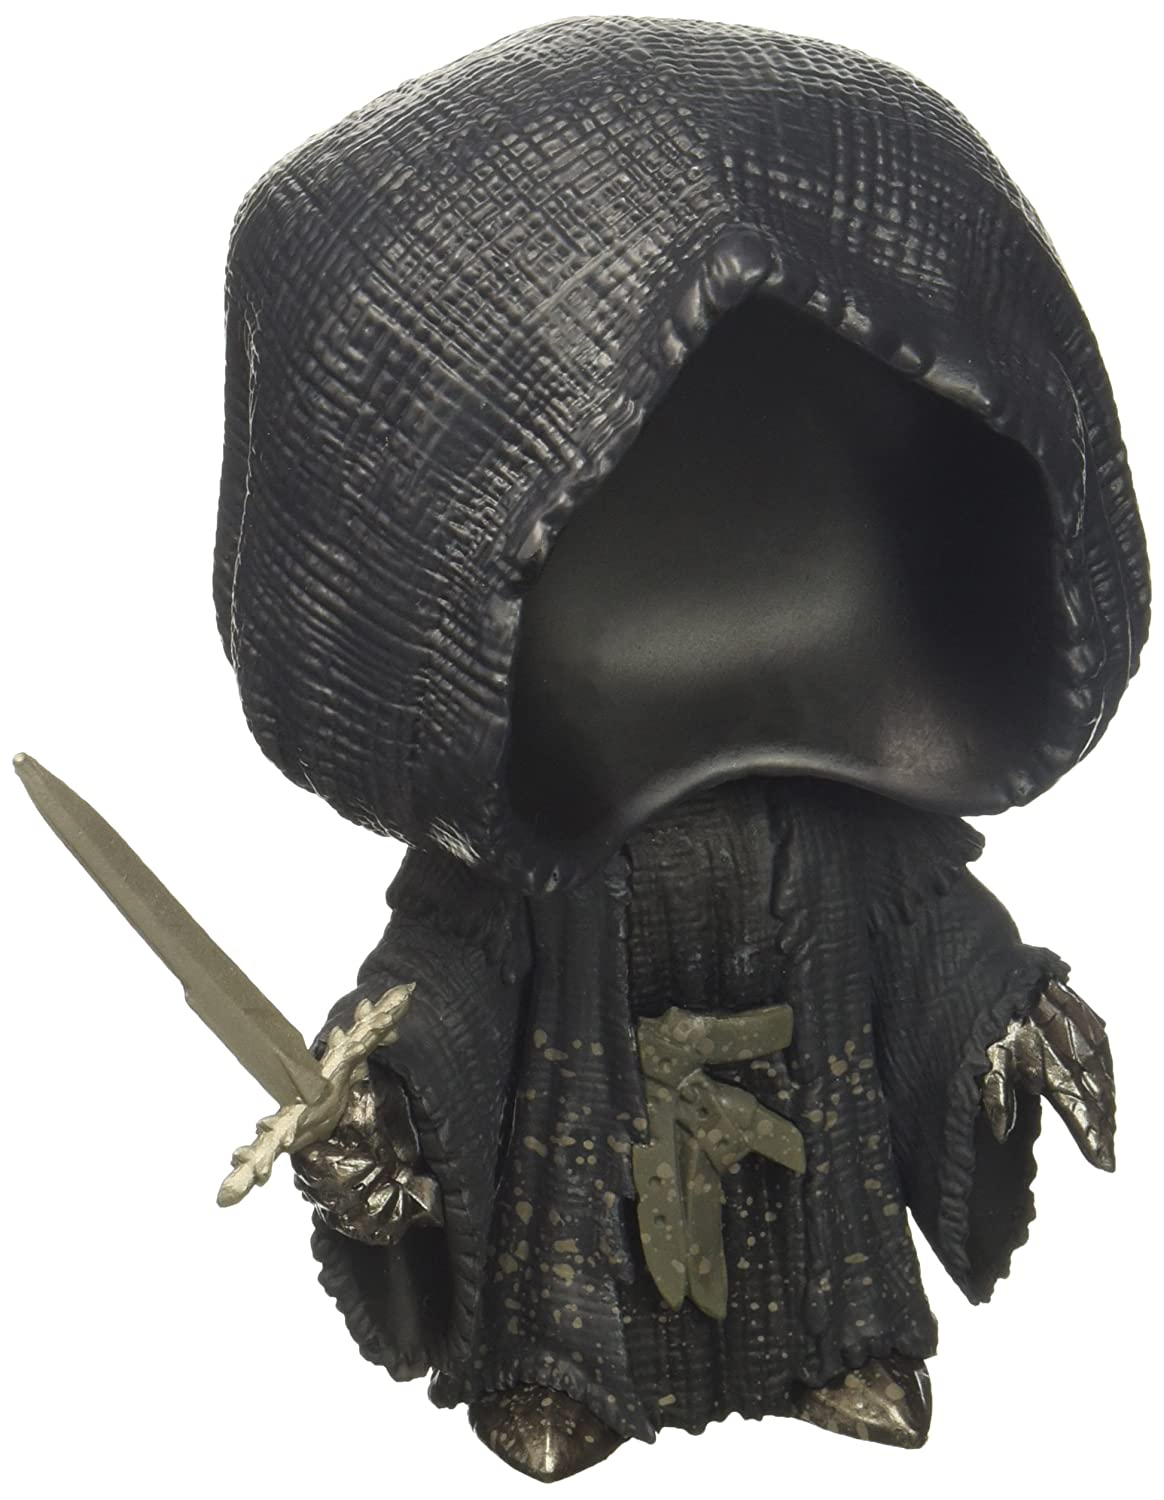 Funko Pop Movies The Lord Of The Rings Nazgul Action Figure by Fun Ko